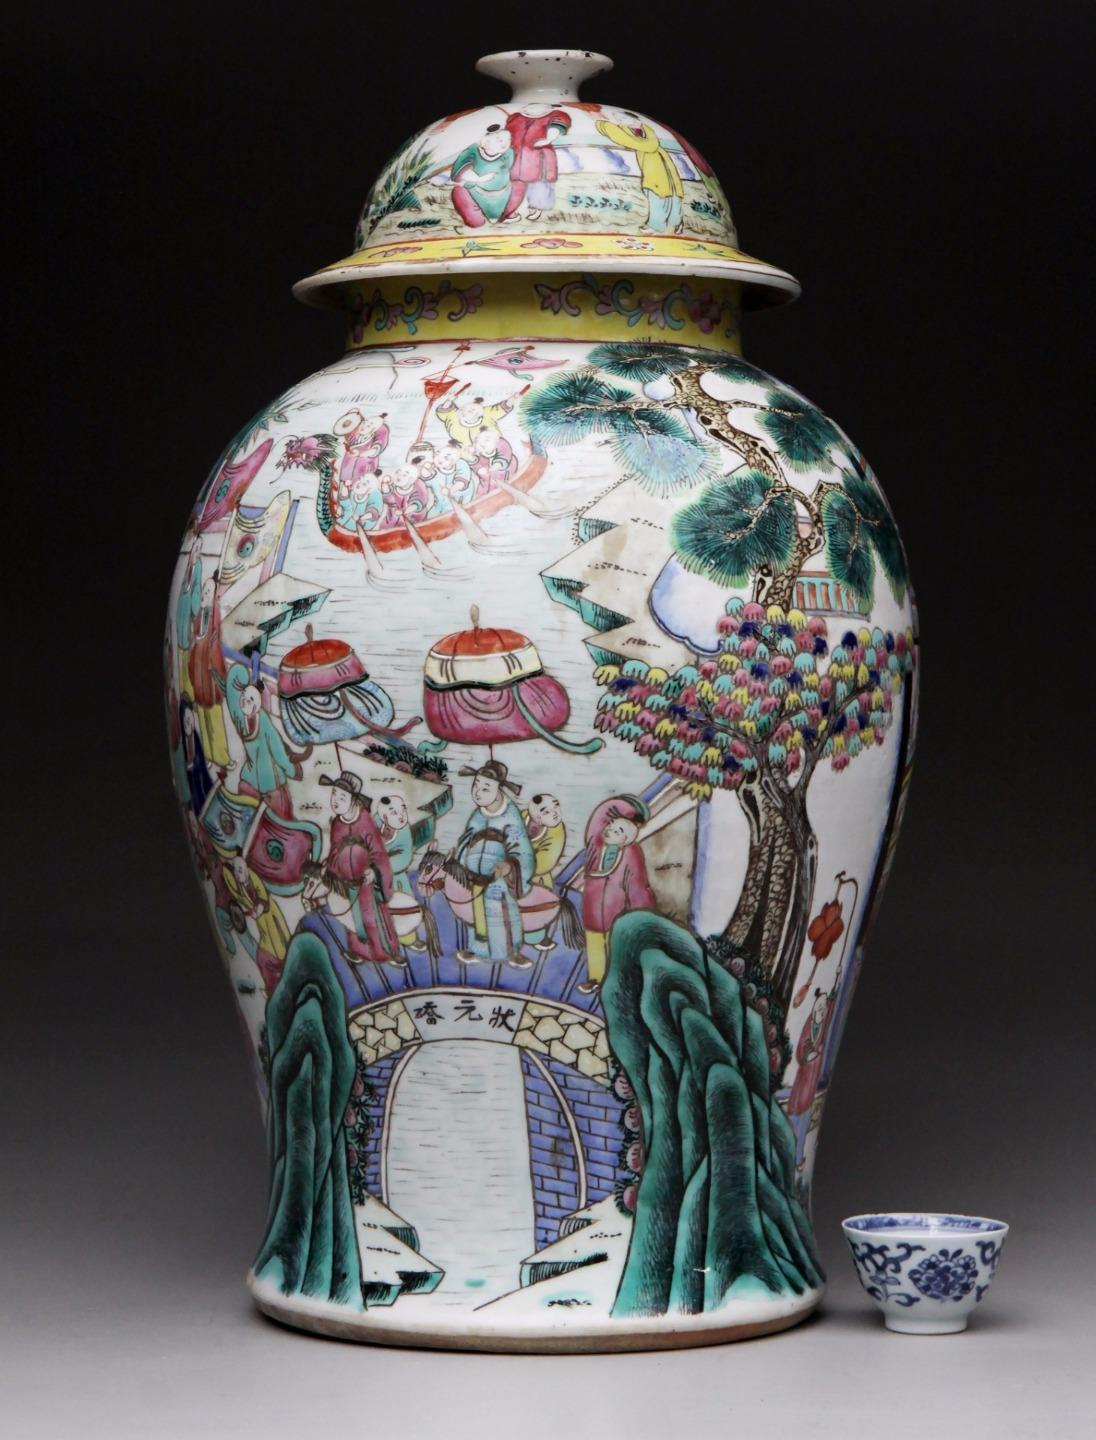 Rare antique chinese porcelain 100 boys covered vase 19th rare antique chinese porcelain 100 boys covered vase 19th century famille rose floridaeventfo Choice Image